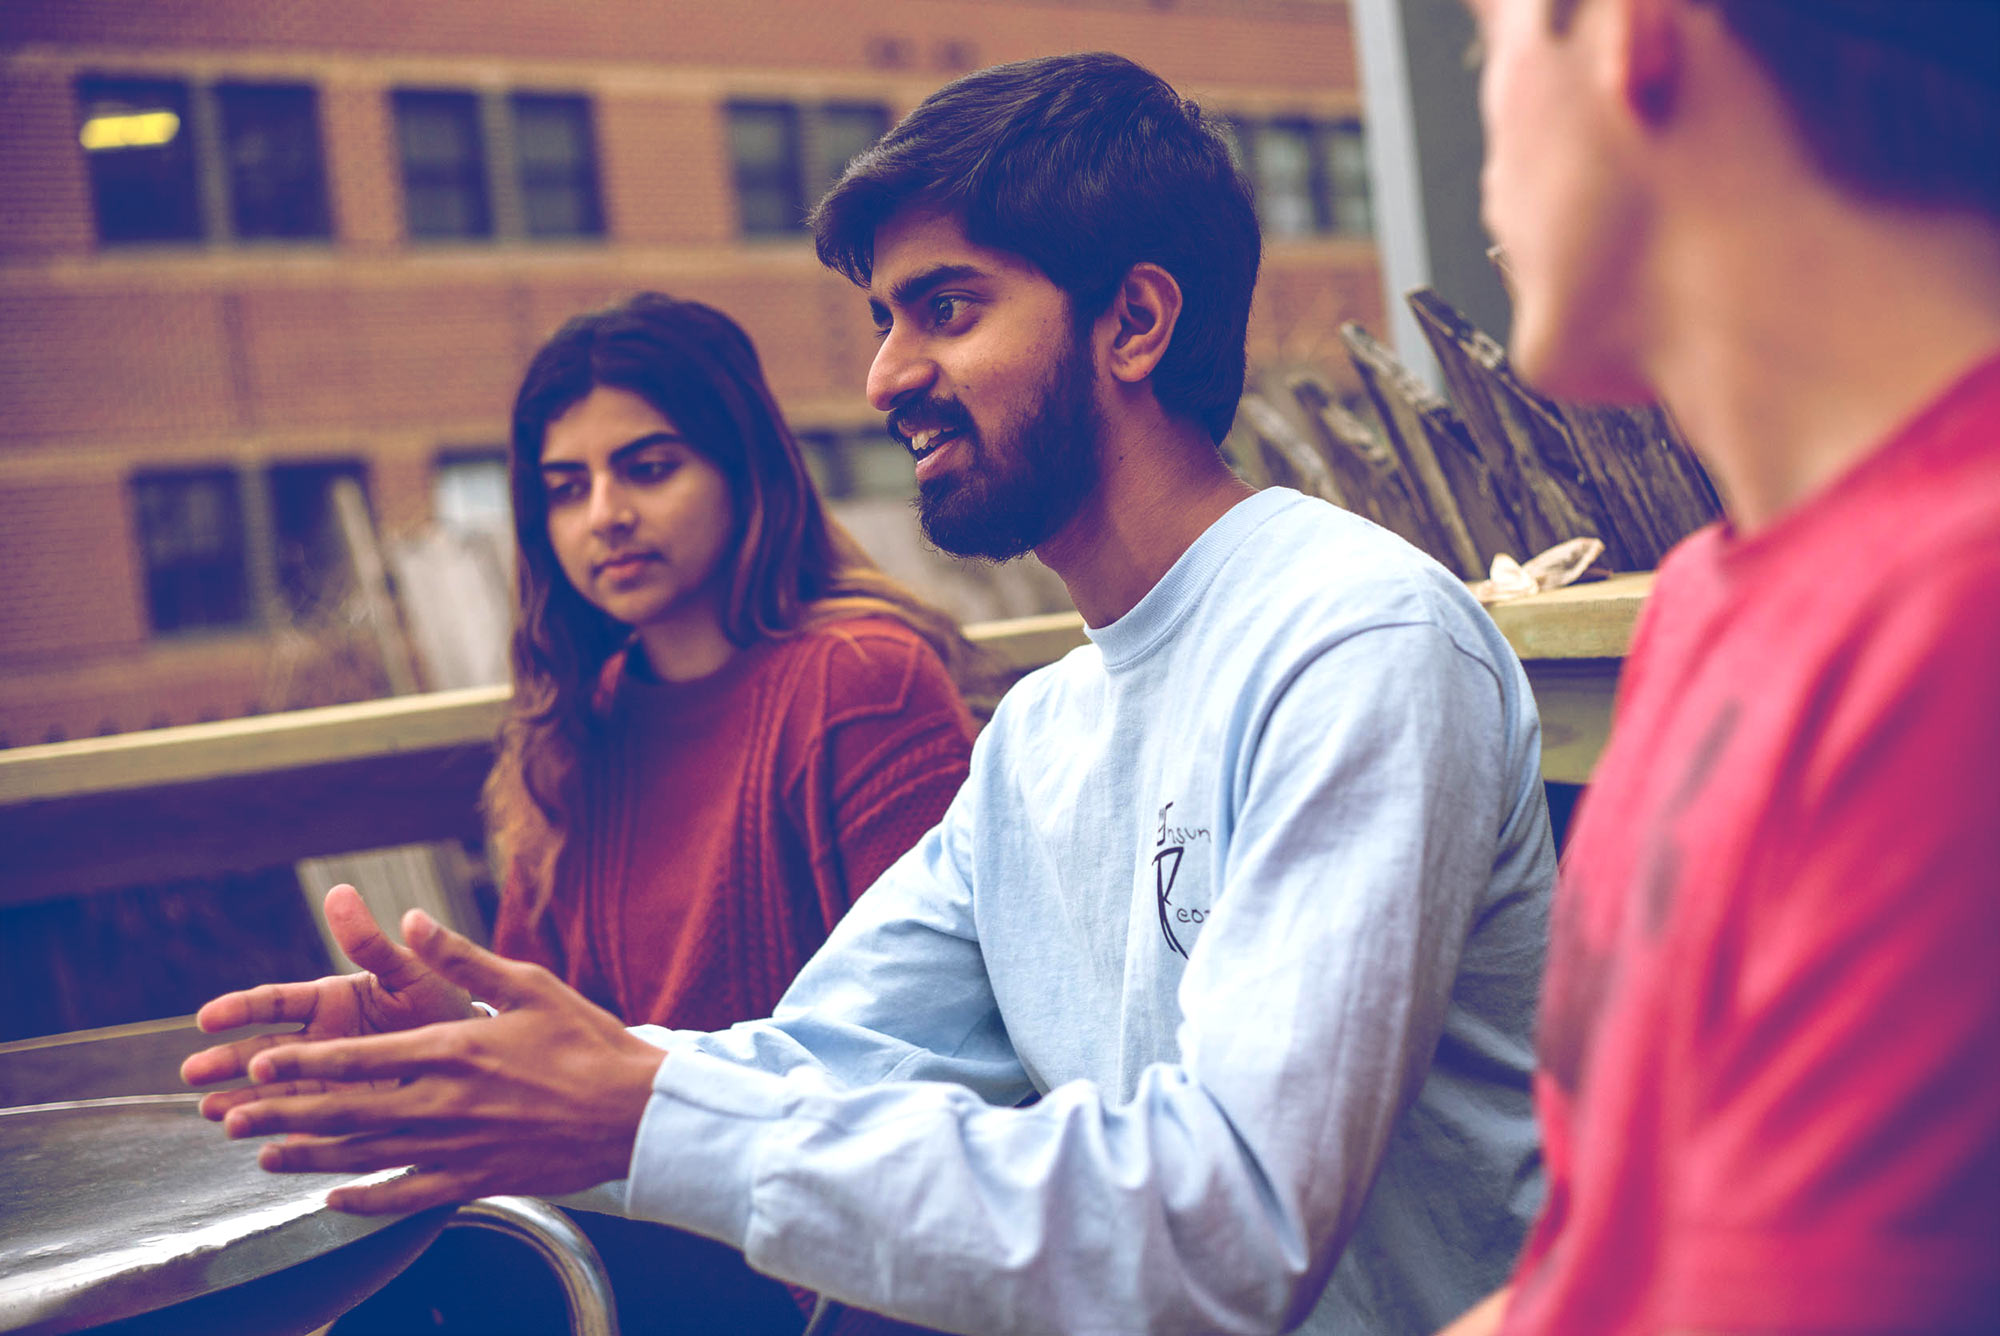 Unsung People founder Shreyas Hariharan explains why he wanted to start Unsung People.